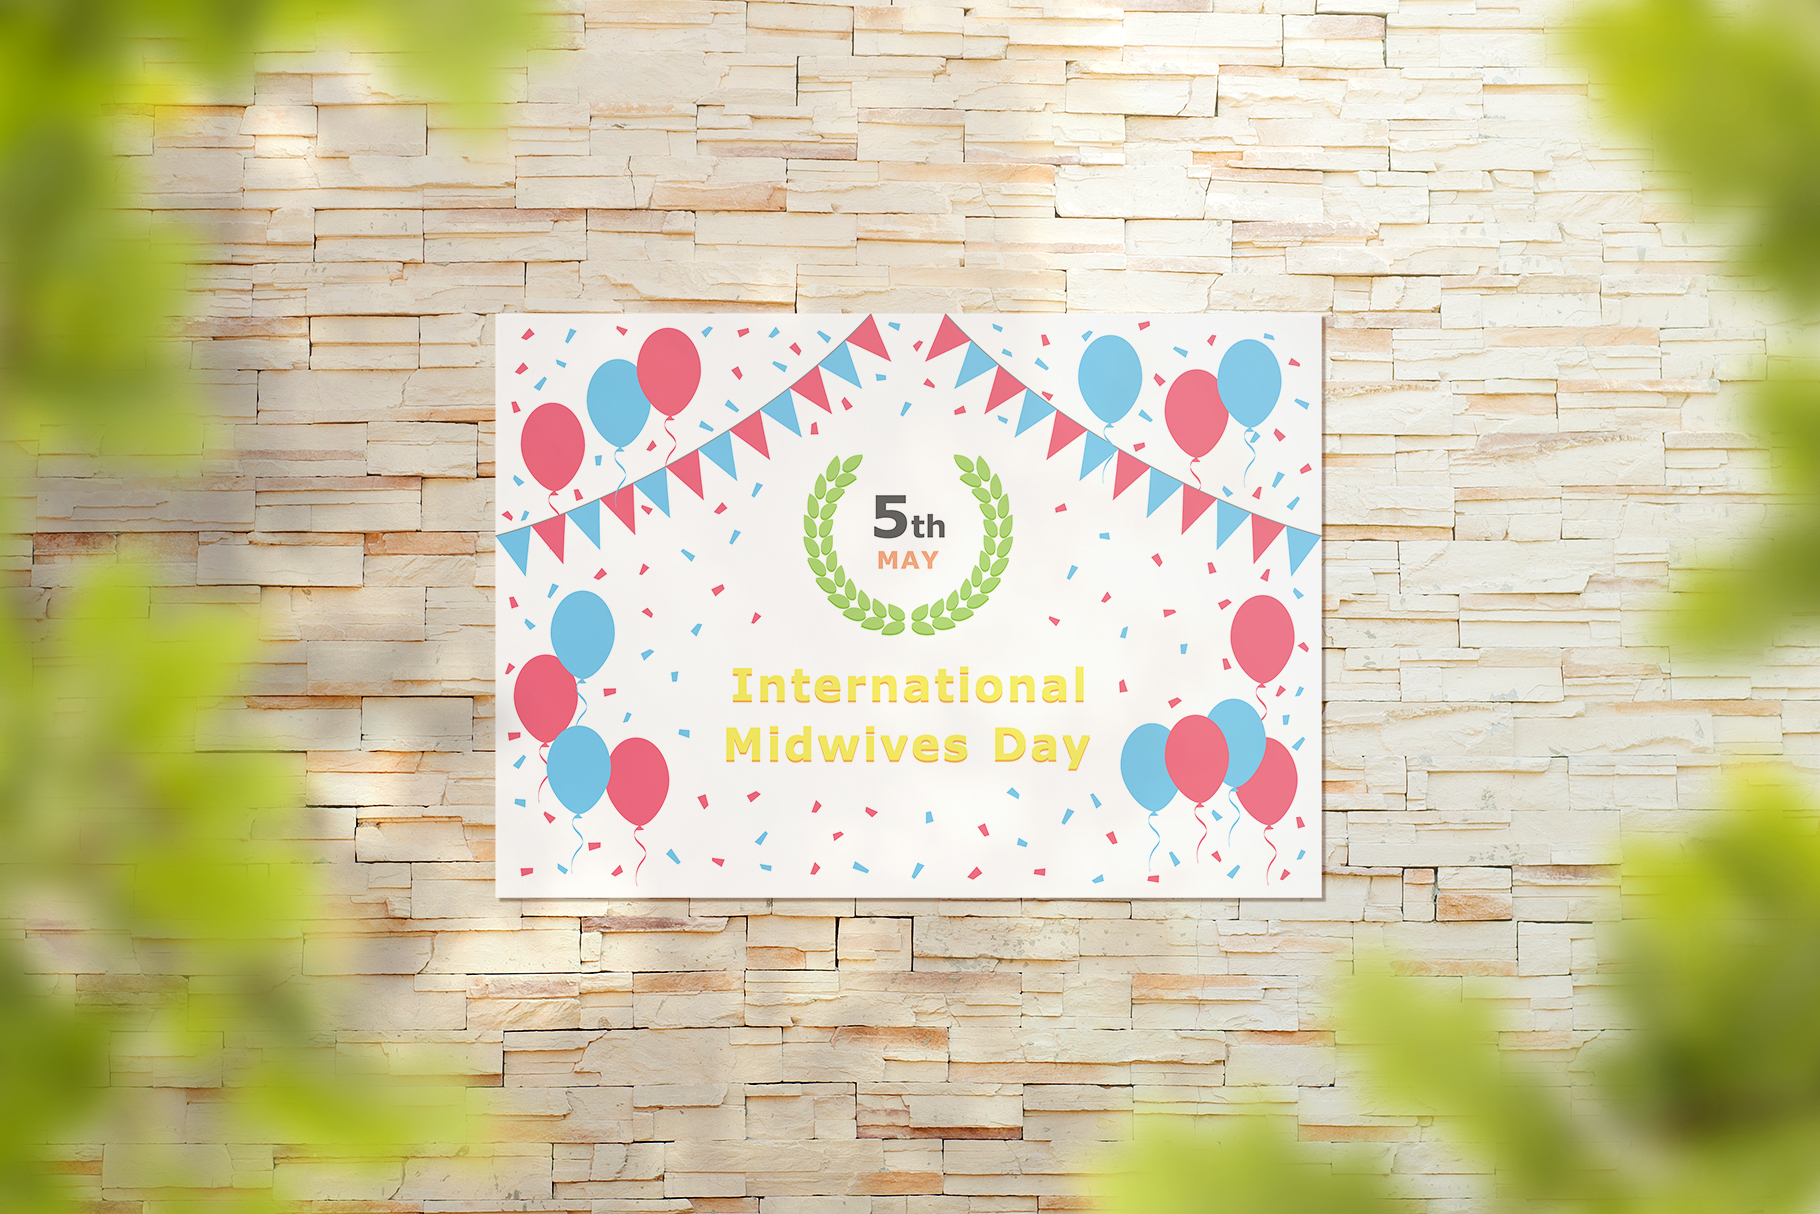 International Midwives Day - May 05 example image 4